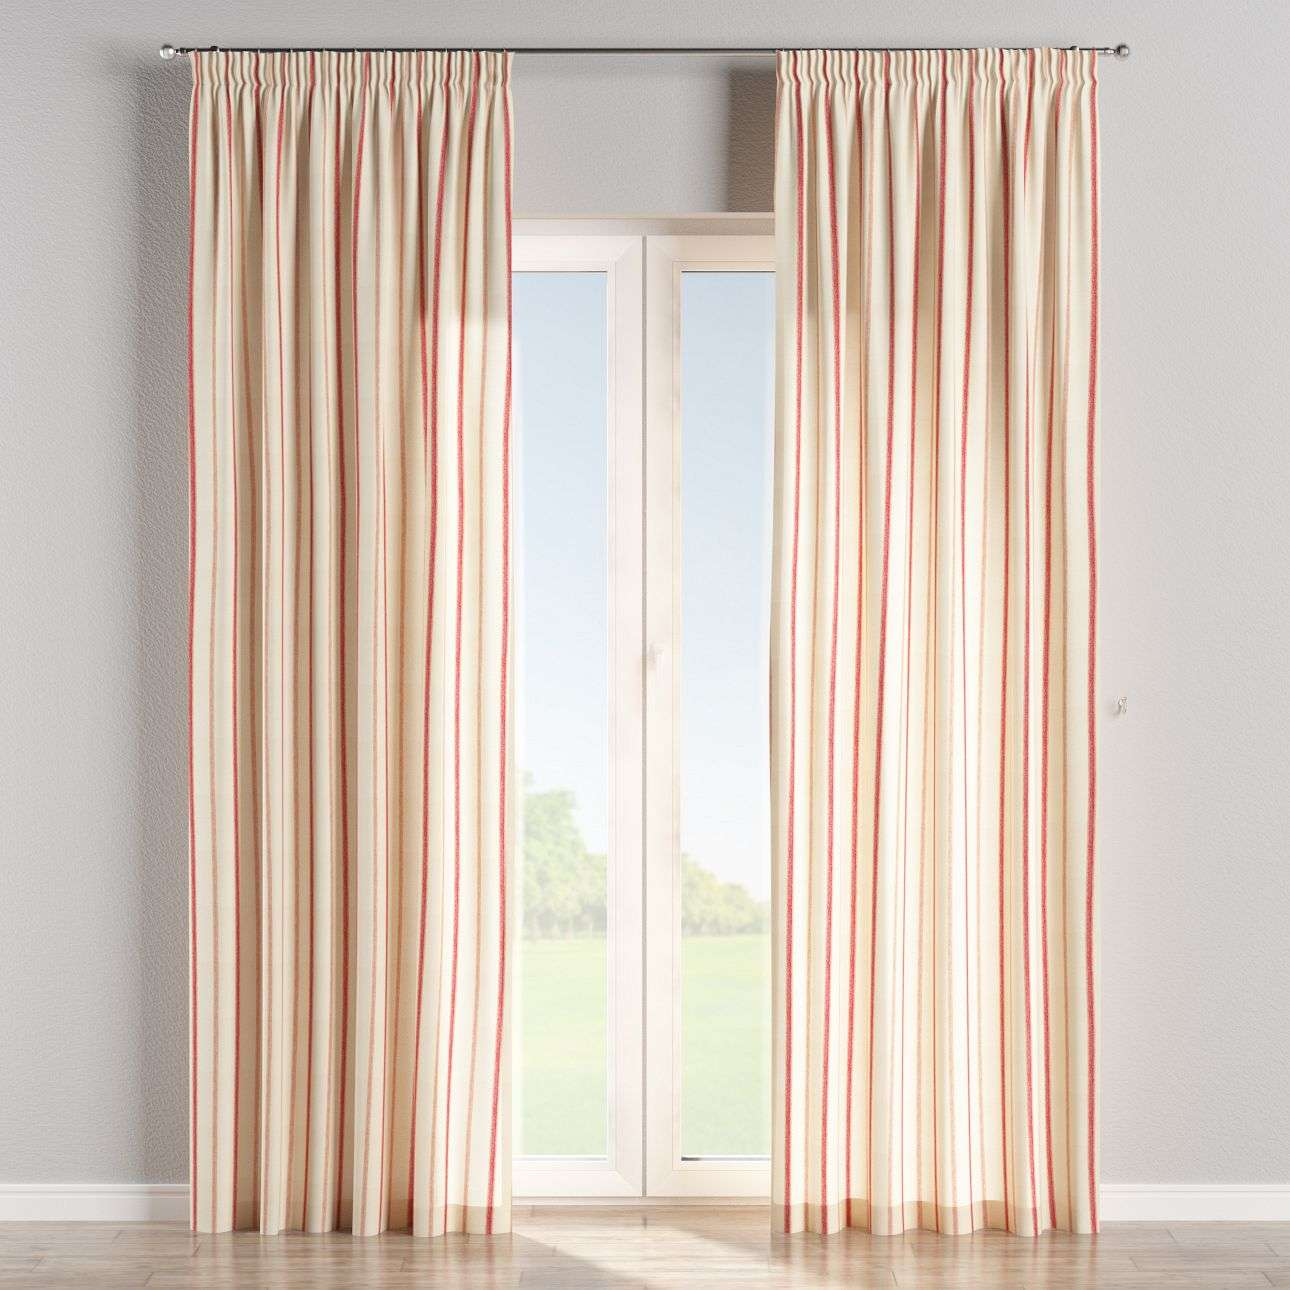 Pencil pleat curtains 130 x 260 cm (51 x 102 inch) in collection Avinon, fabric: 129-15